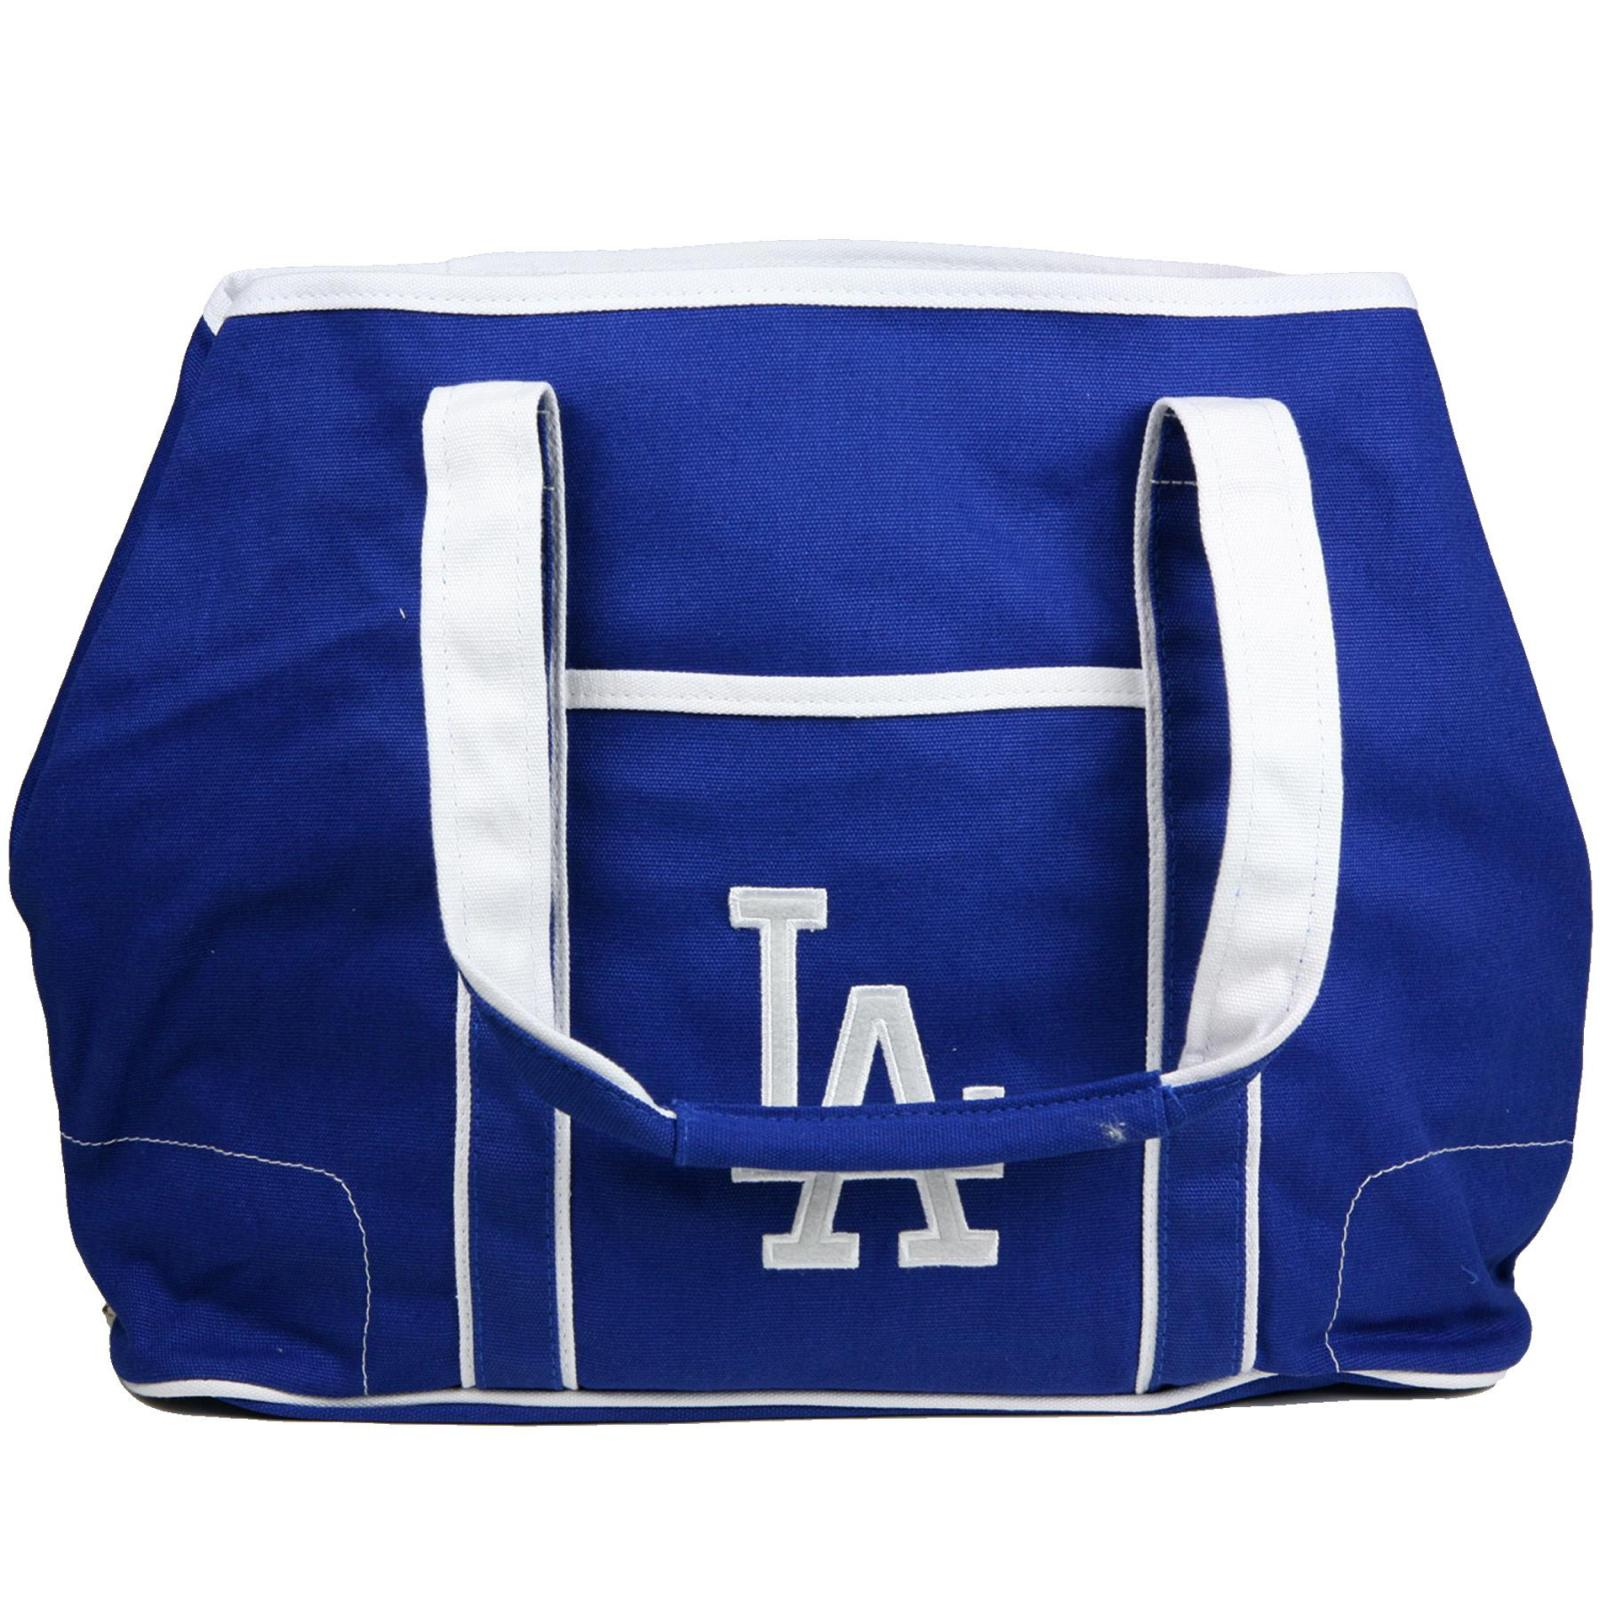 Los Angeles Dodgers Canvas Hampton Tote Bag